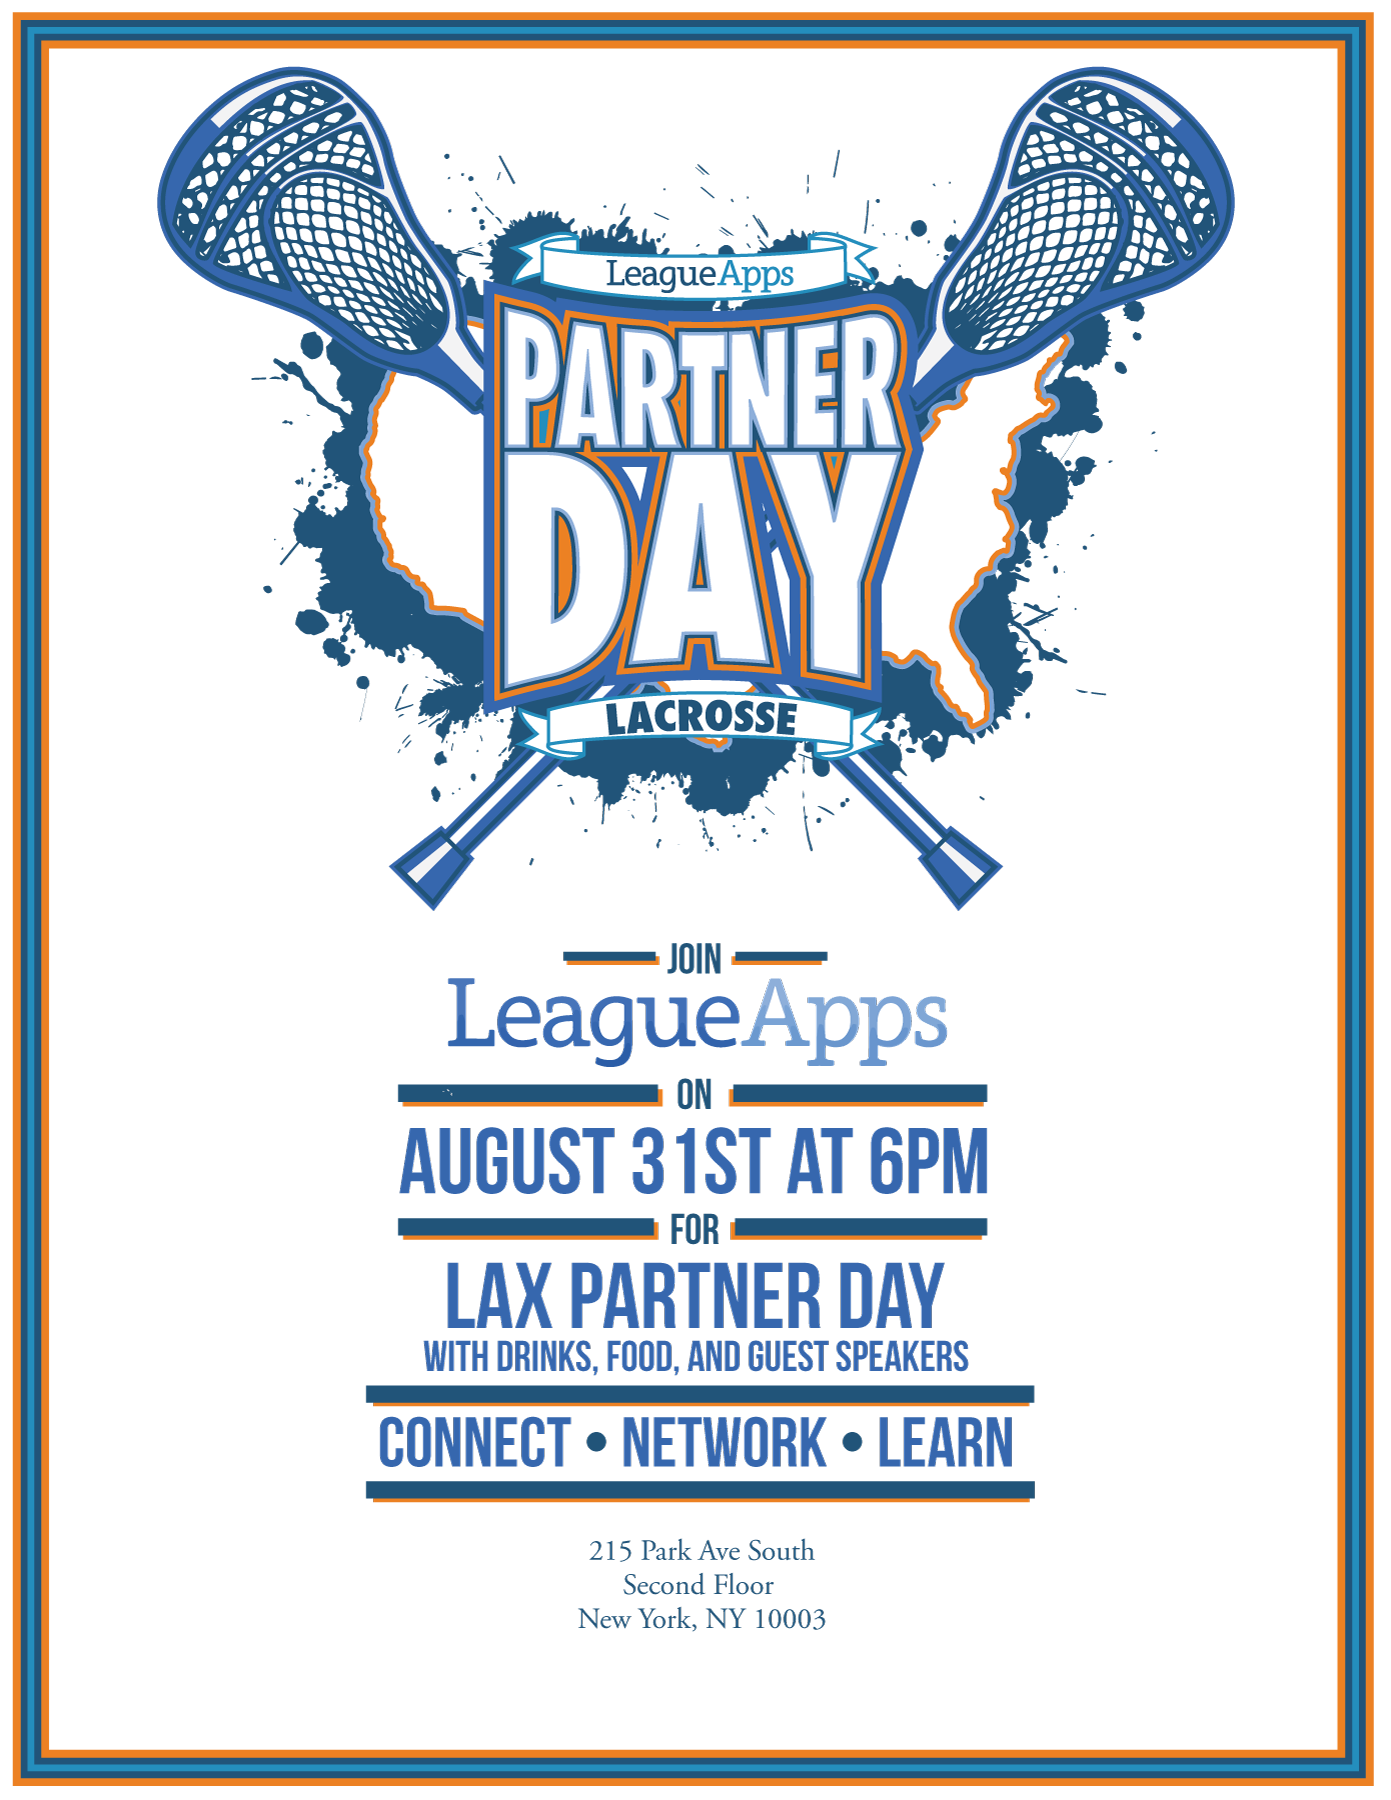 Lax Partner Day